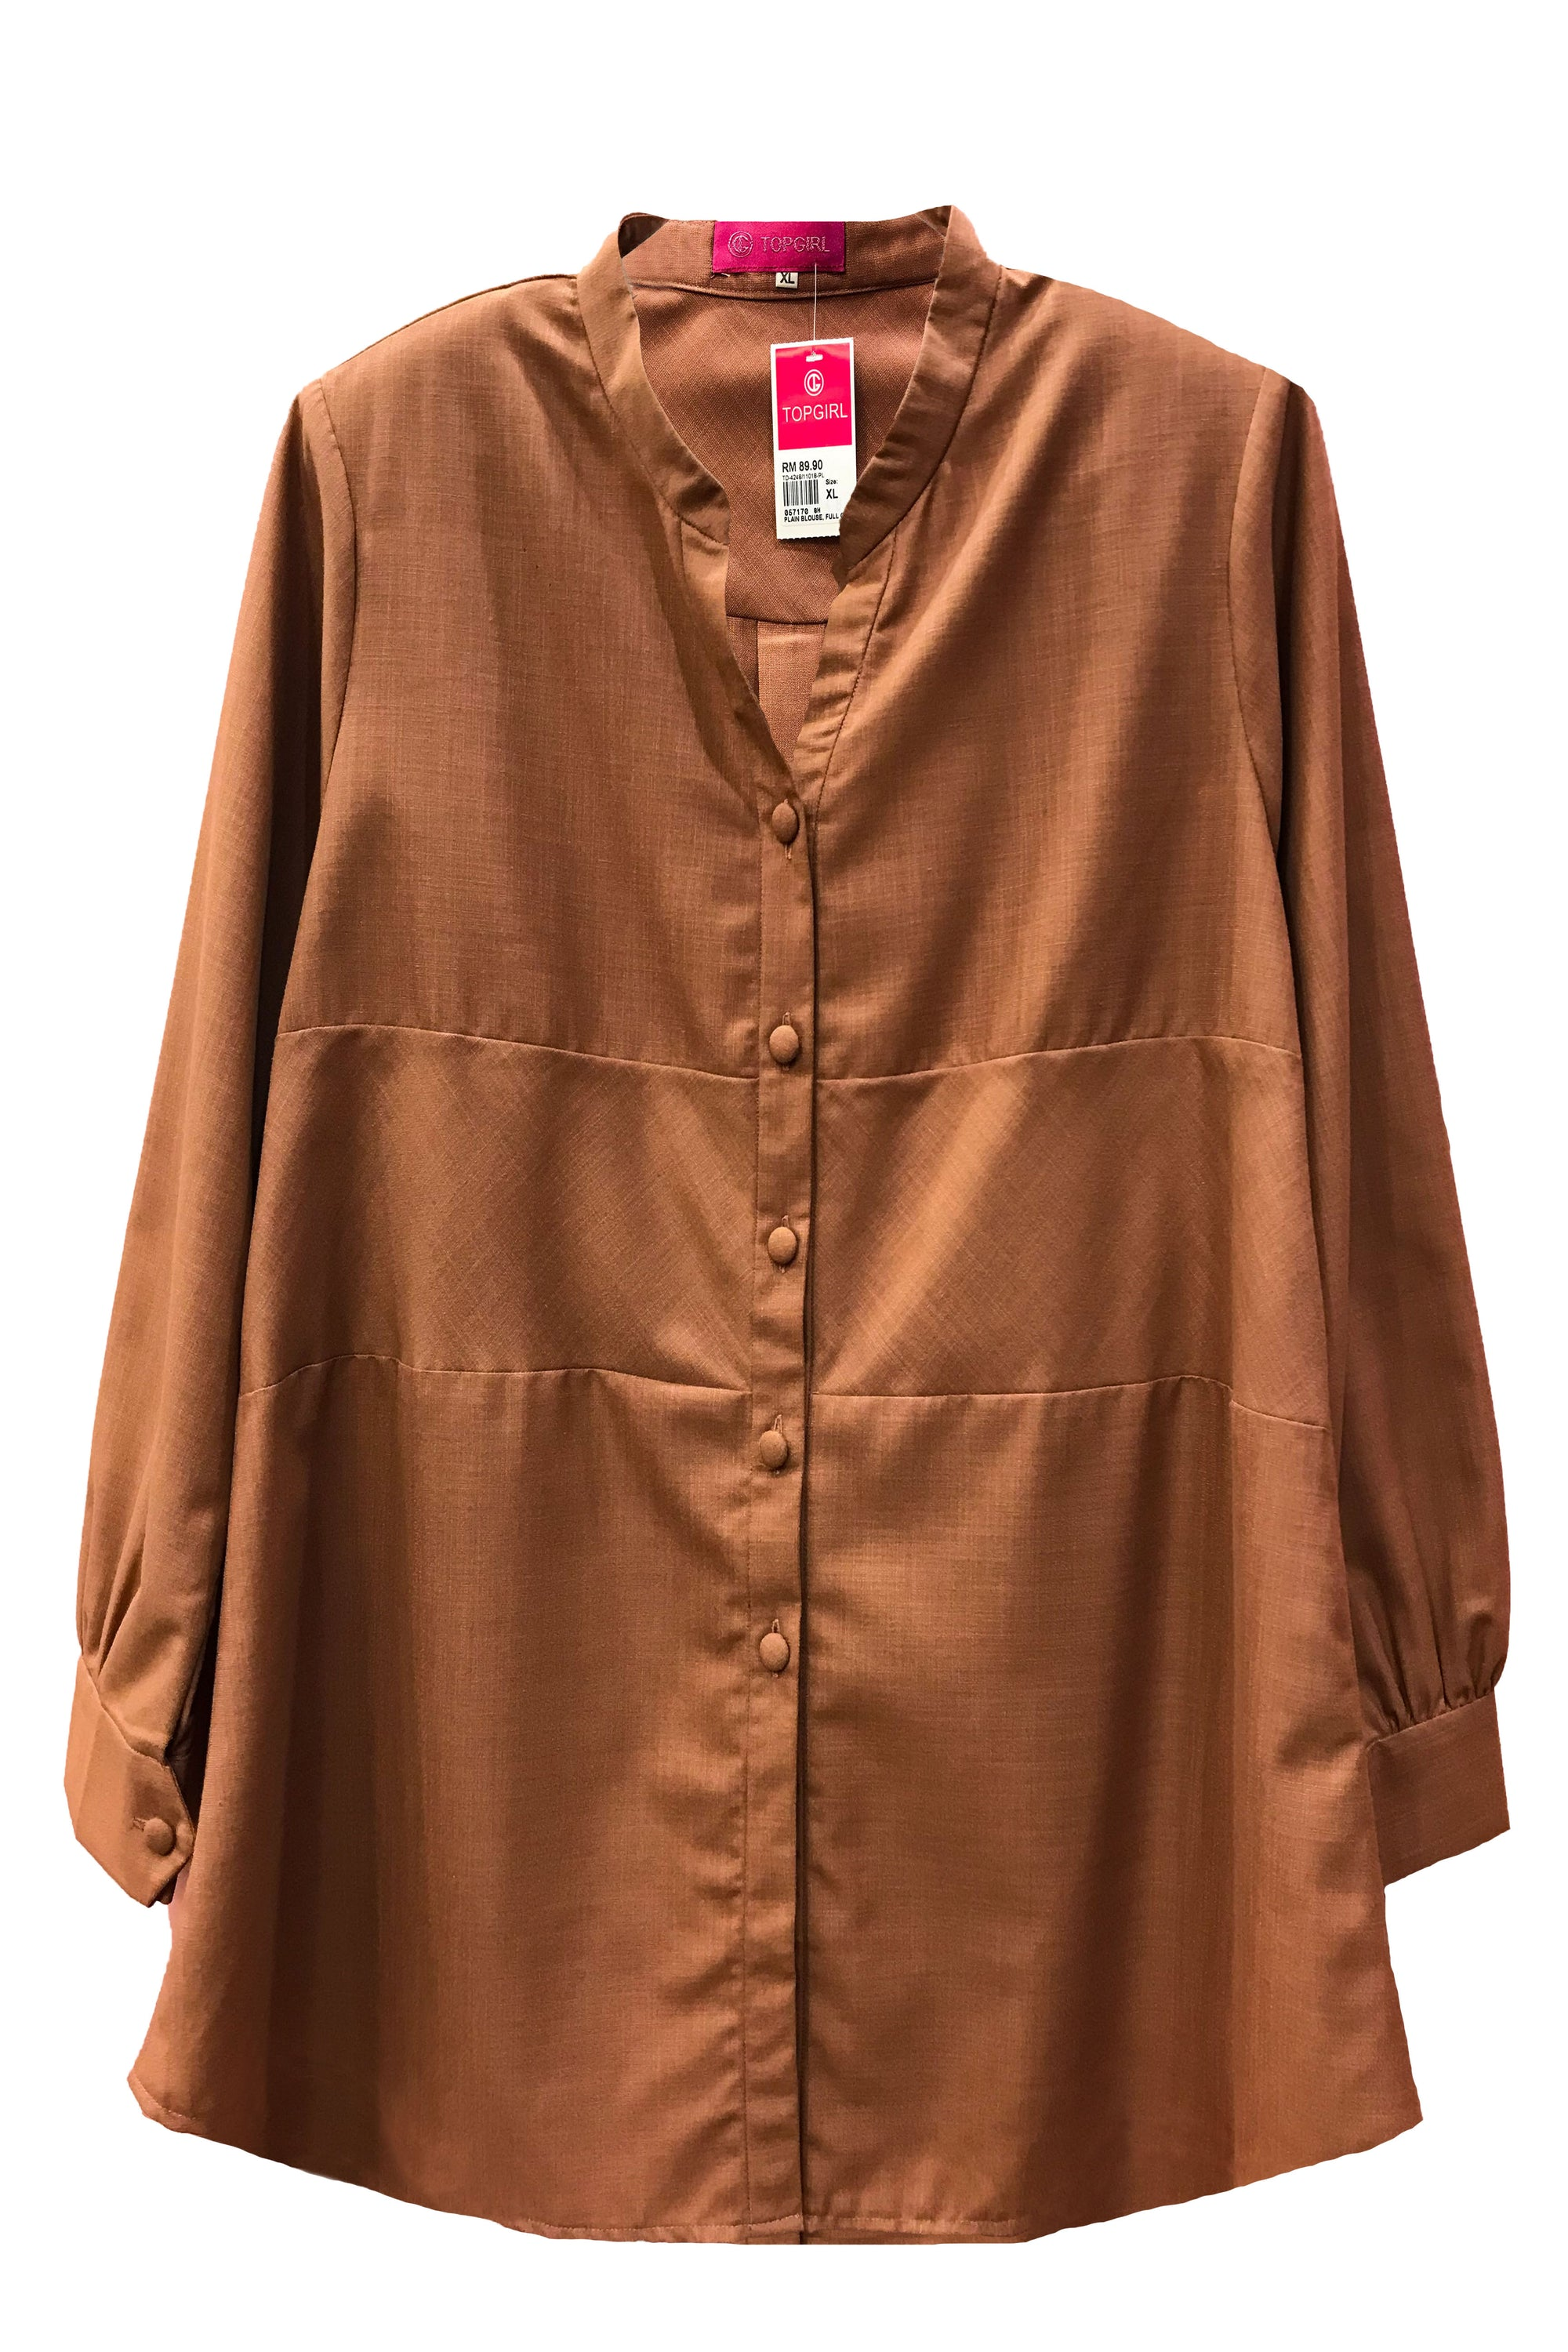 Grande Formal Blouse